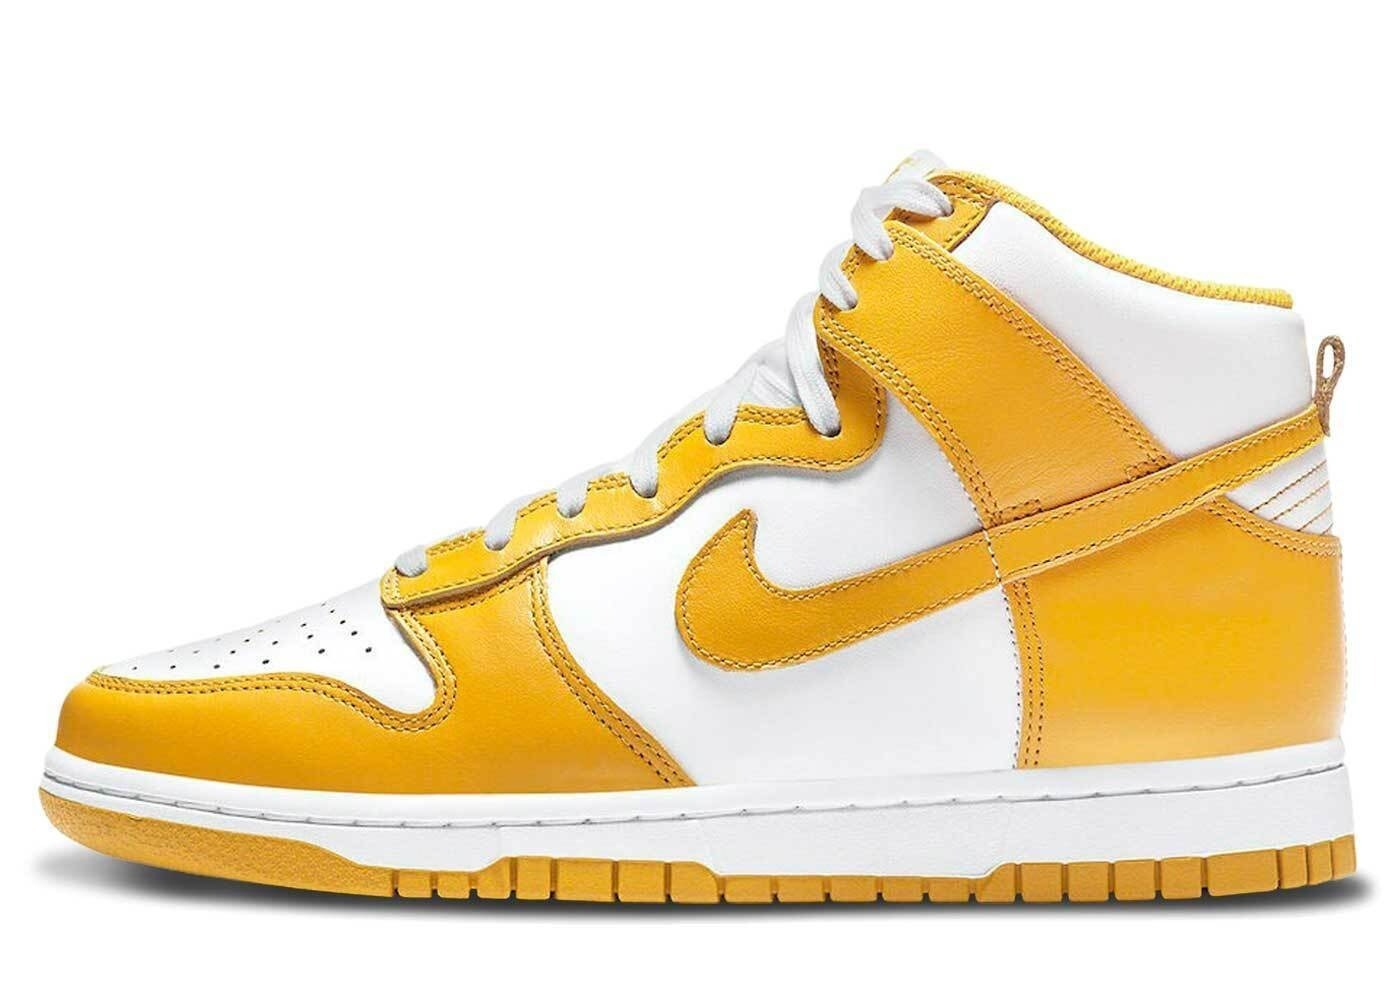 Nike Dunk High Dark Sulfur Womensの写真